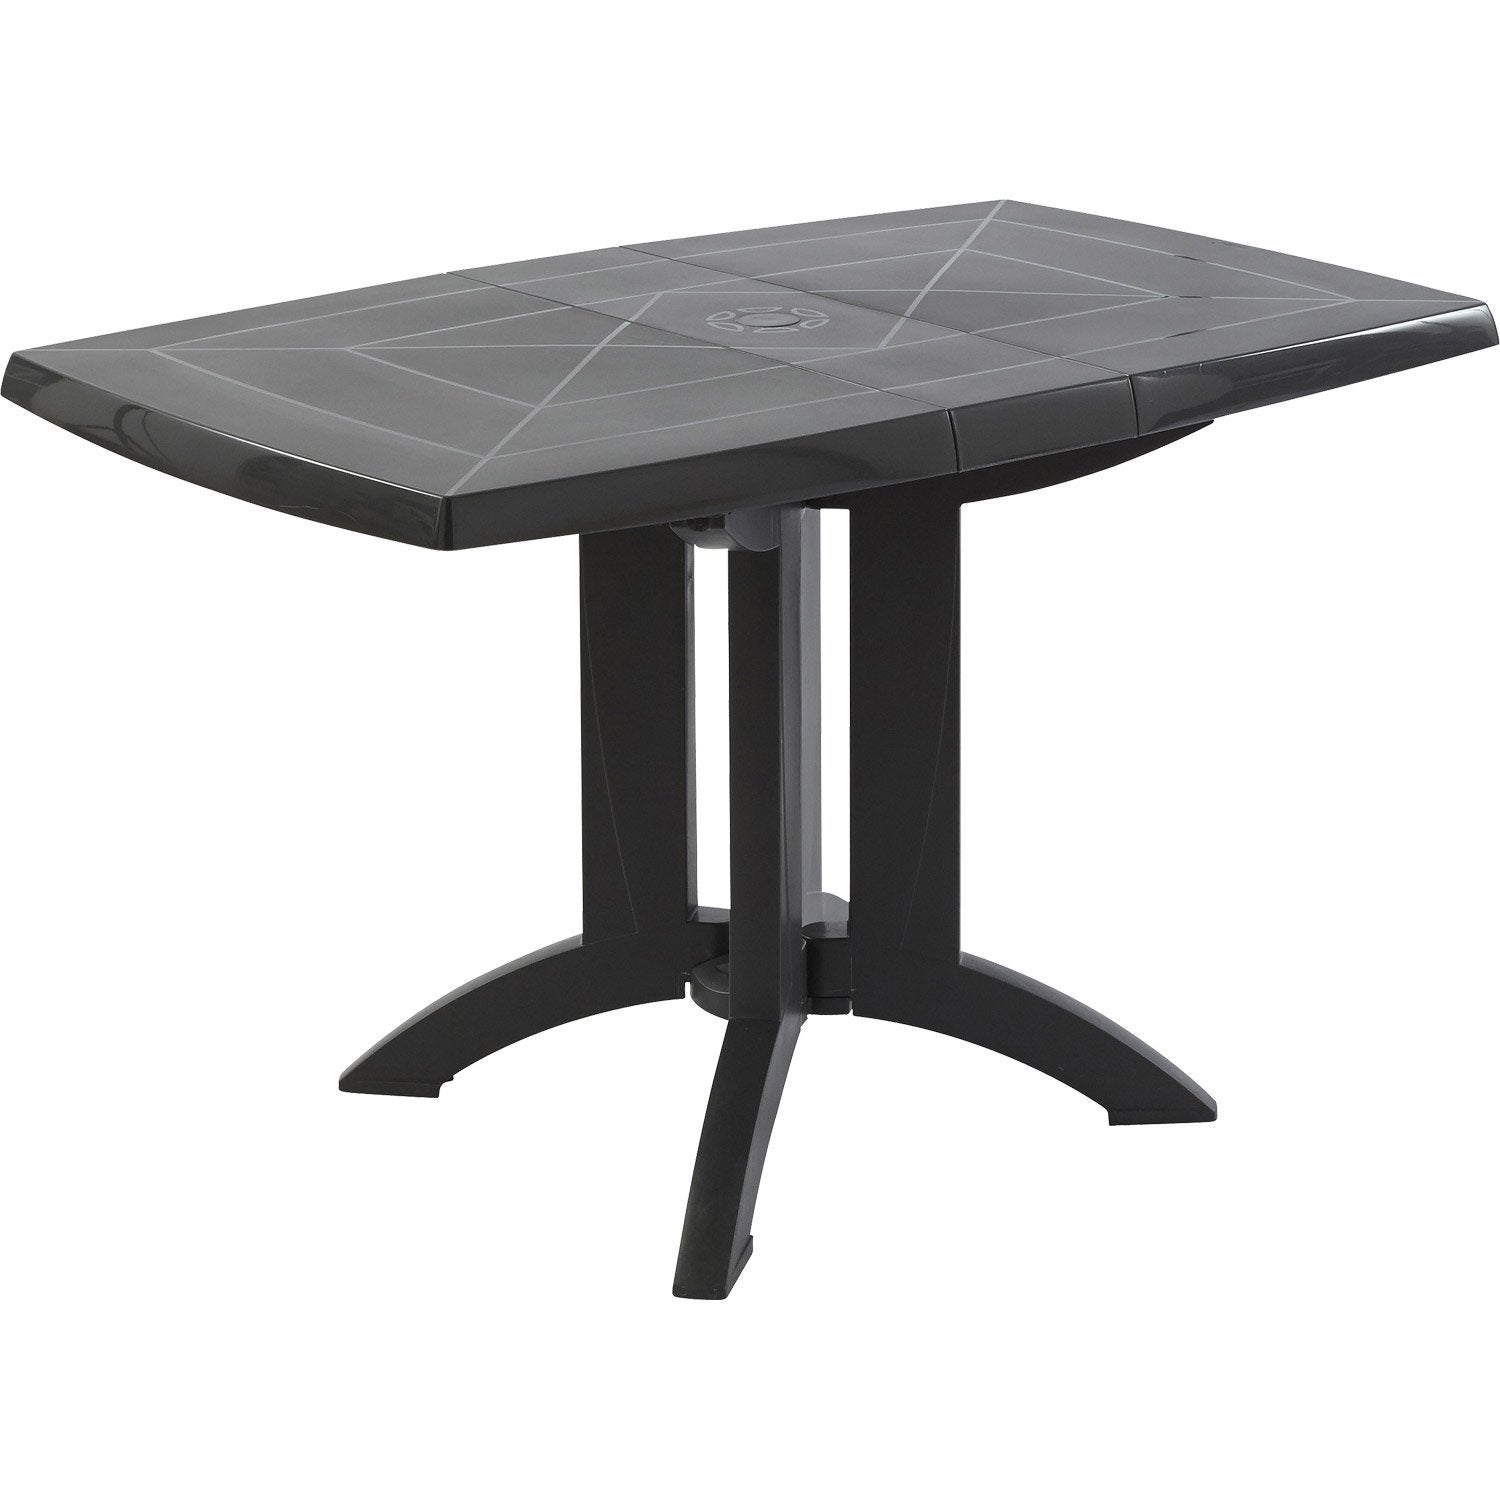 Table De Jardin Gifi